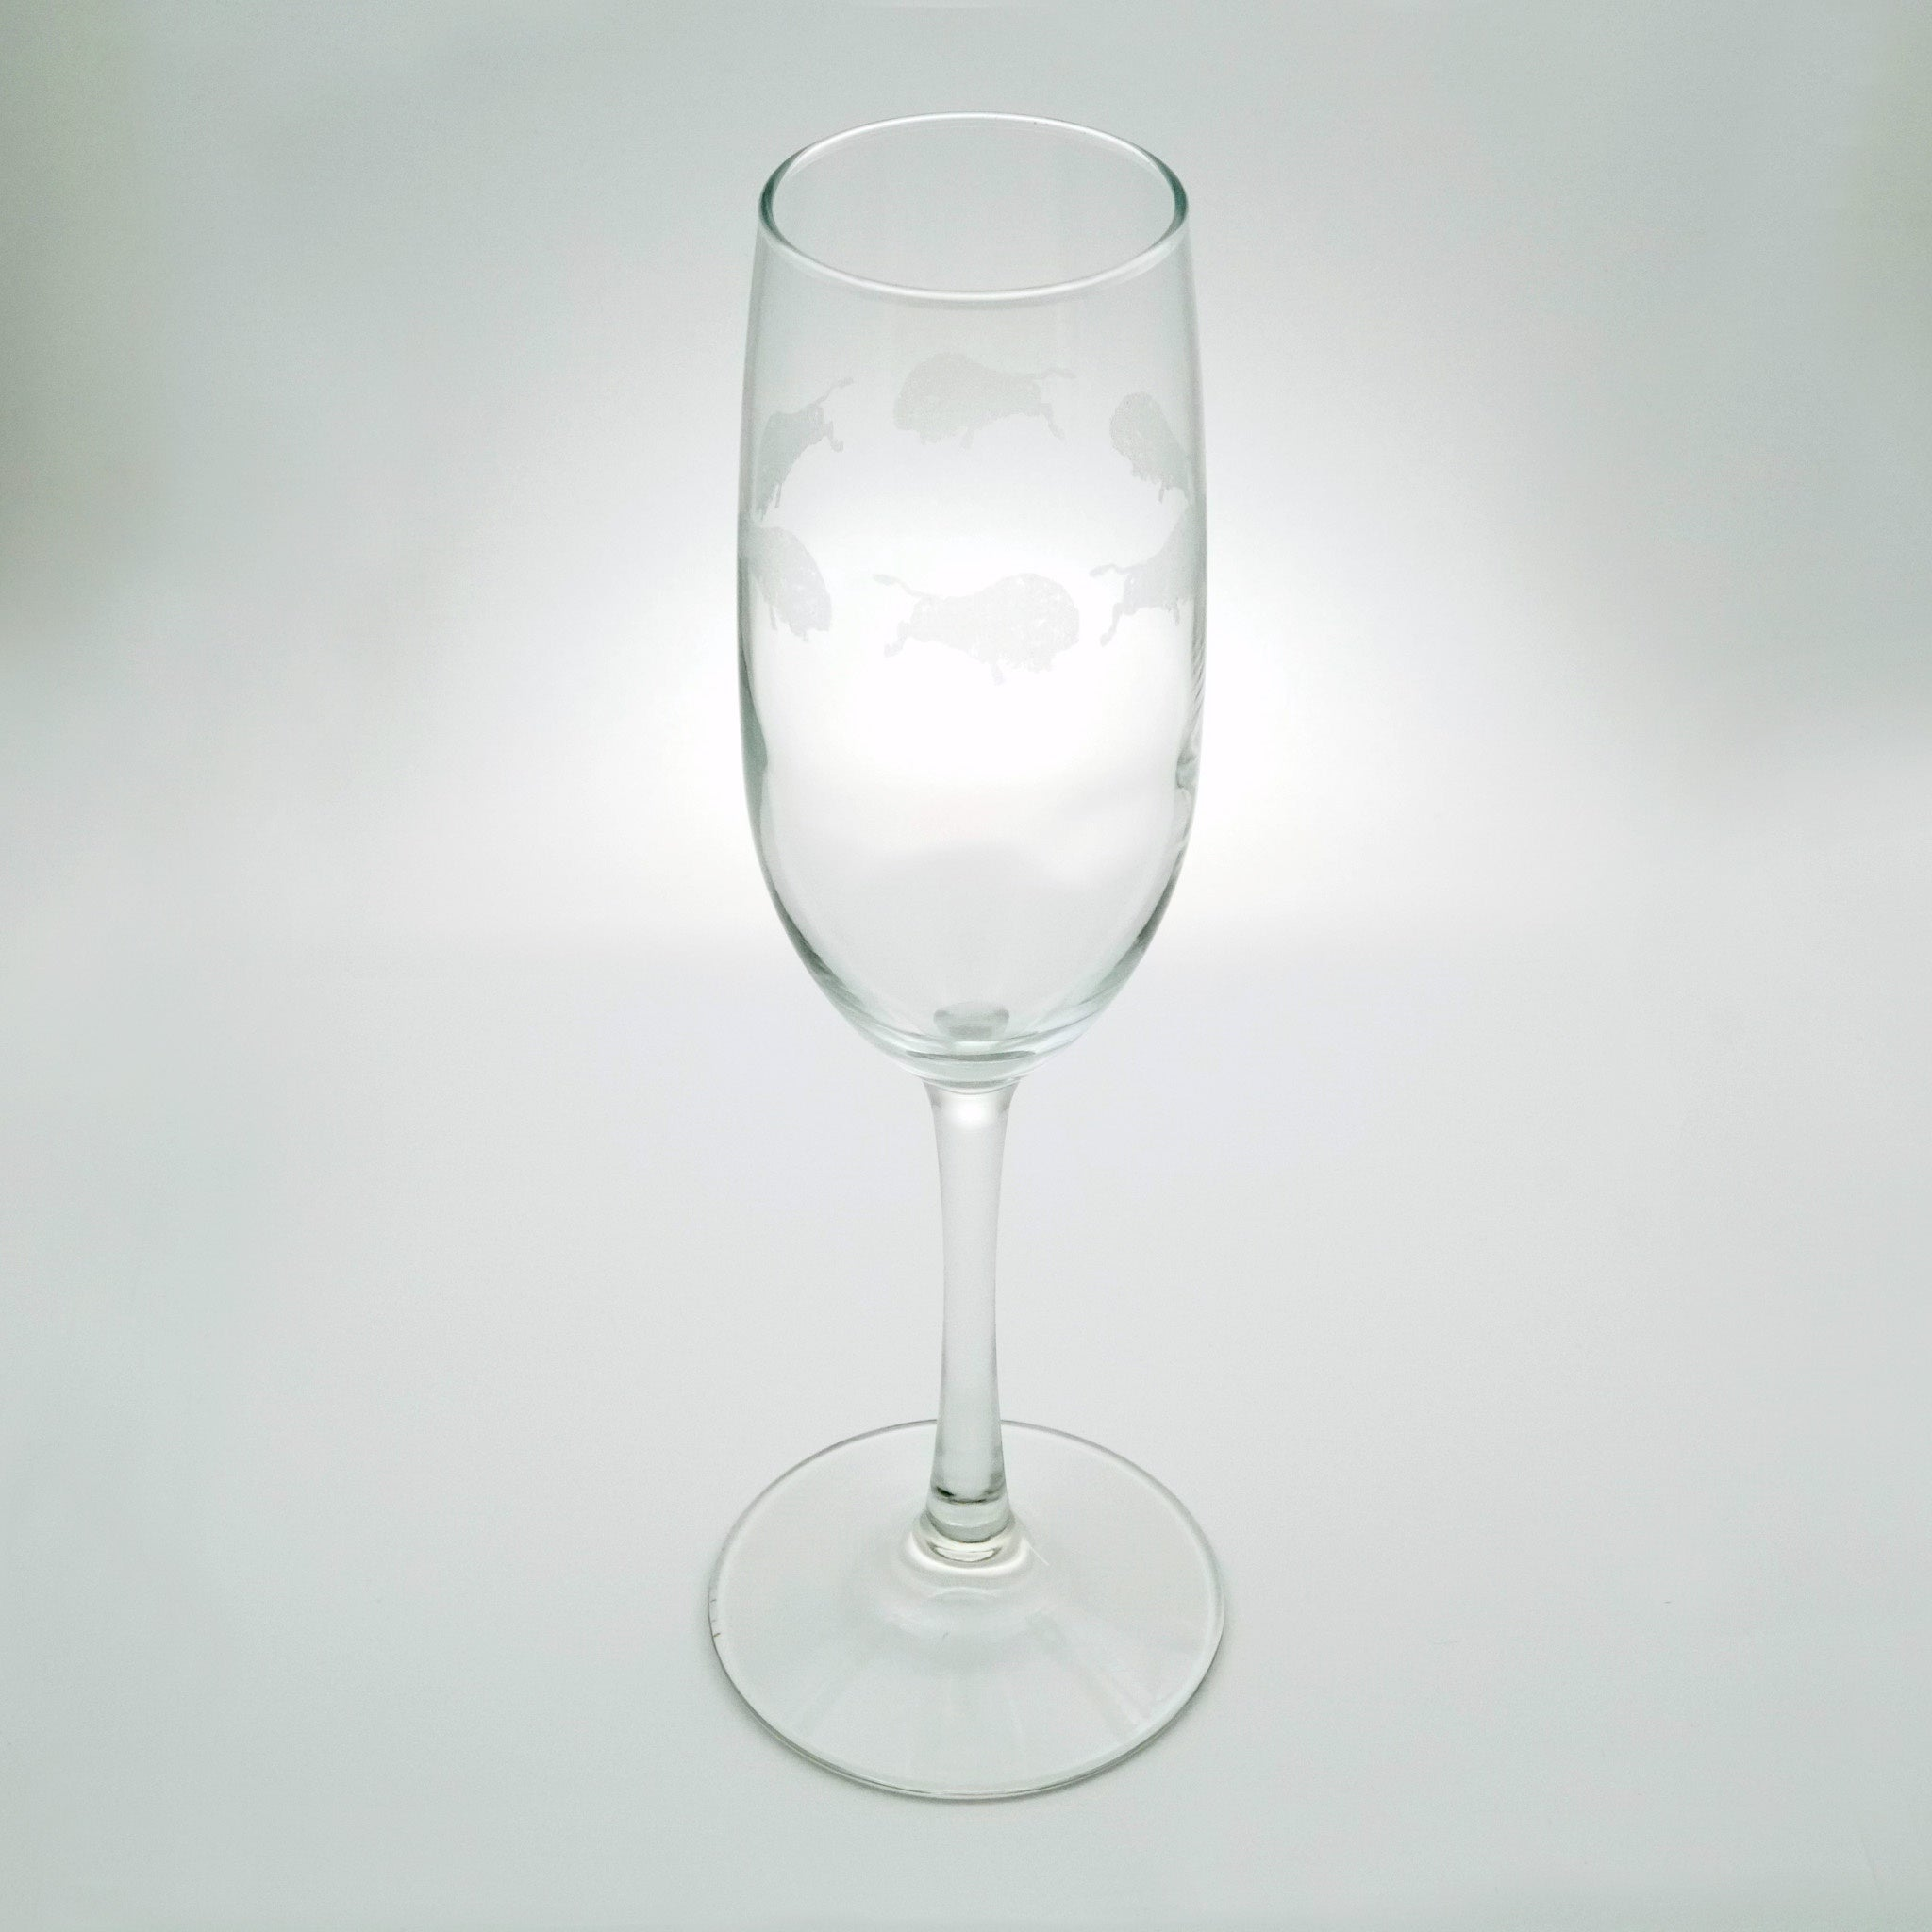 Etched Buffalo Champagne Flute Glass